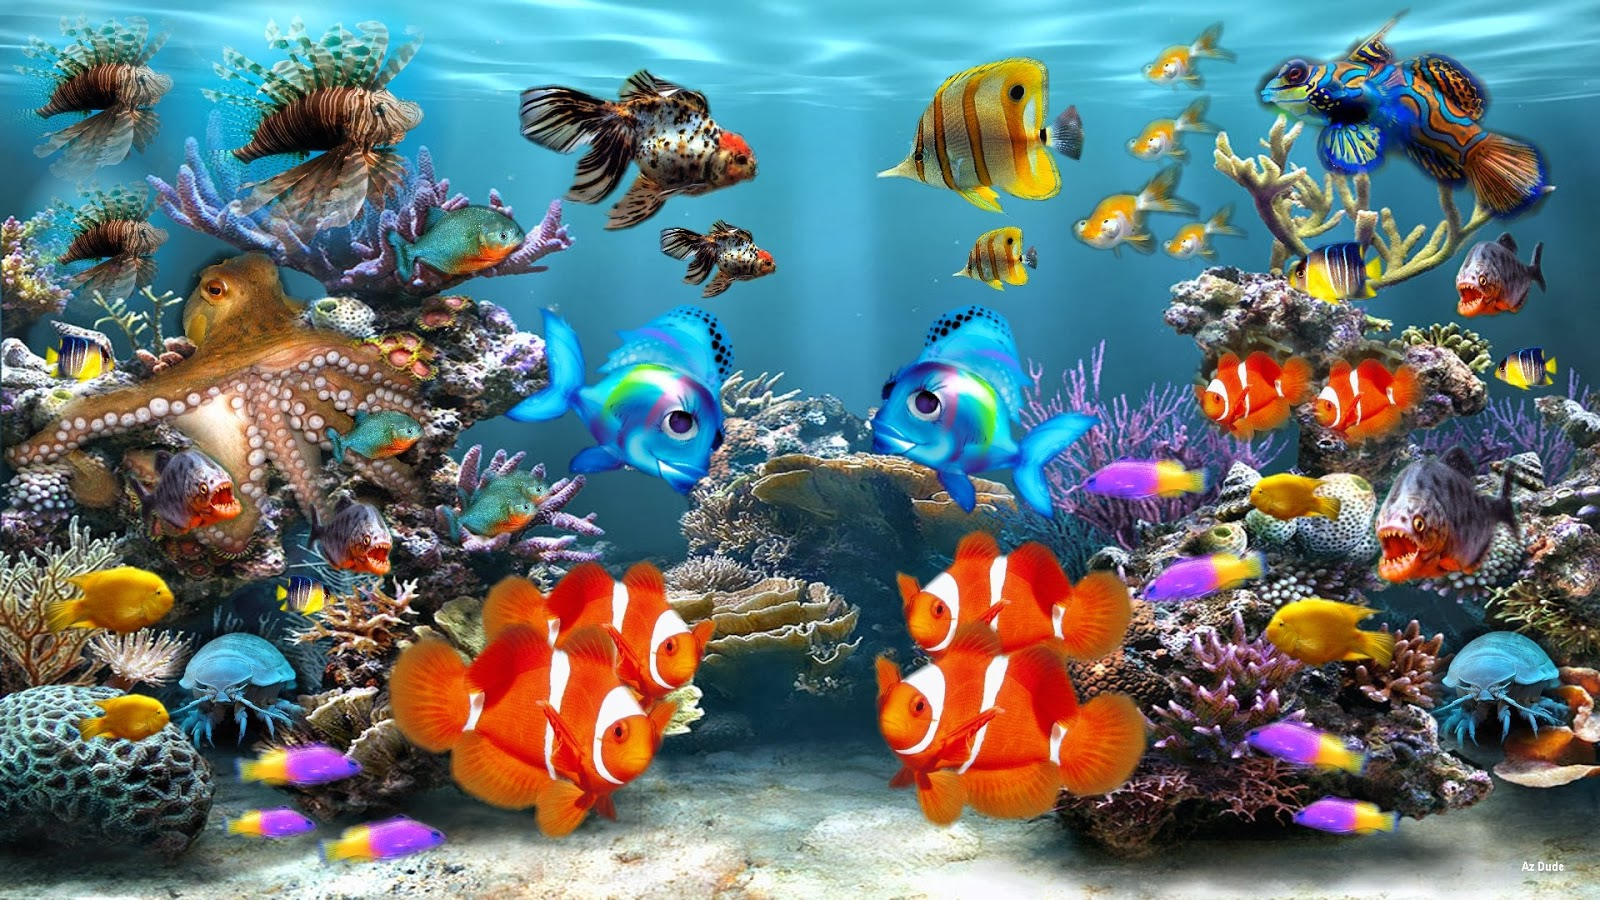 aquarium wallpaper hd - photo #18